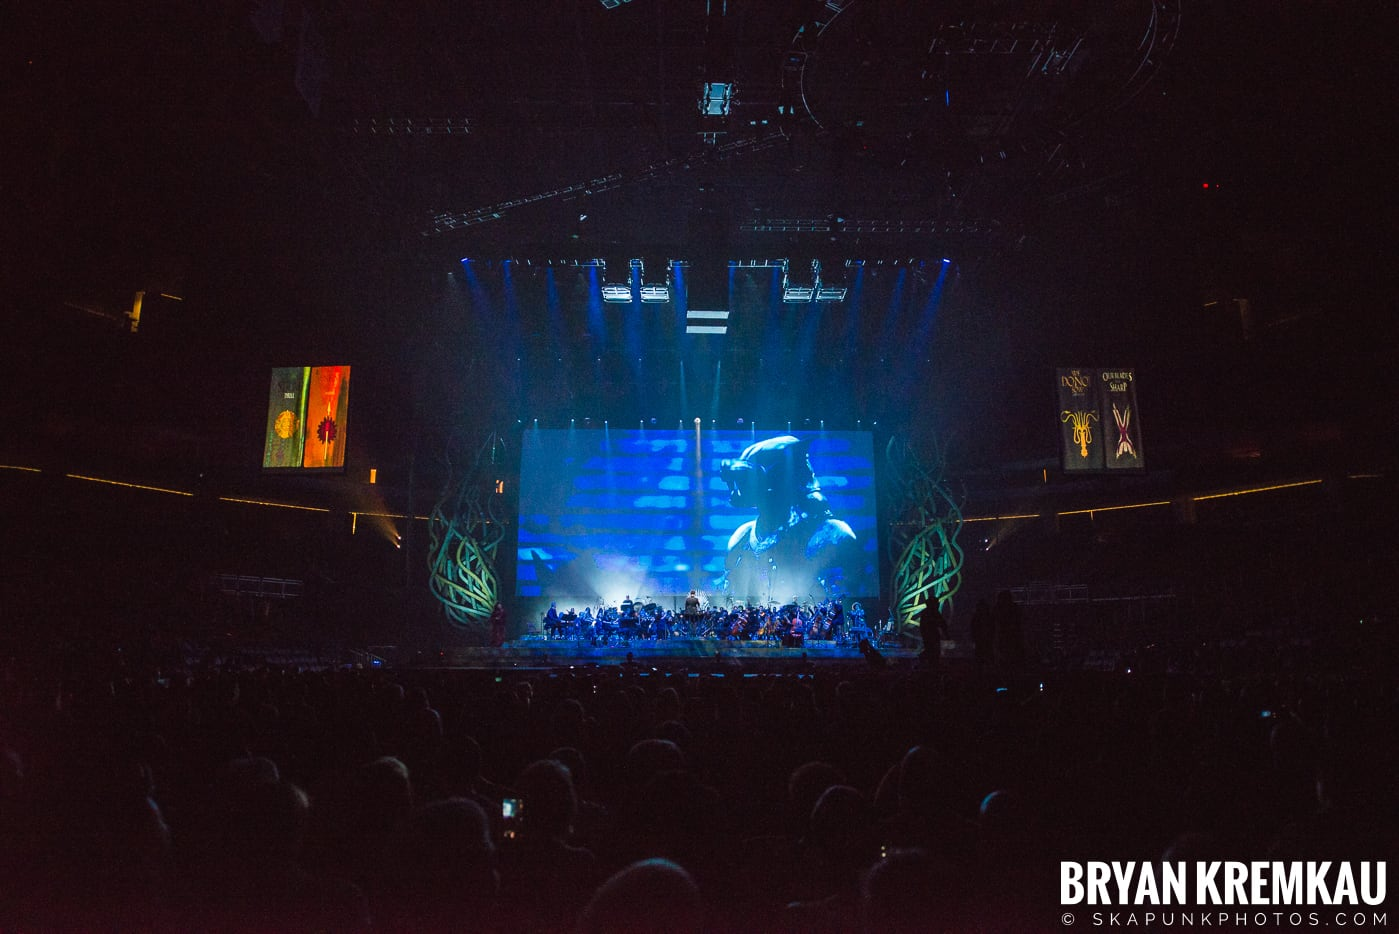 Game of Thrones Live Experience @ Prudential Center, Newark, NJ - 9.26.18 (25)